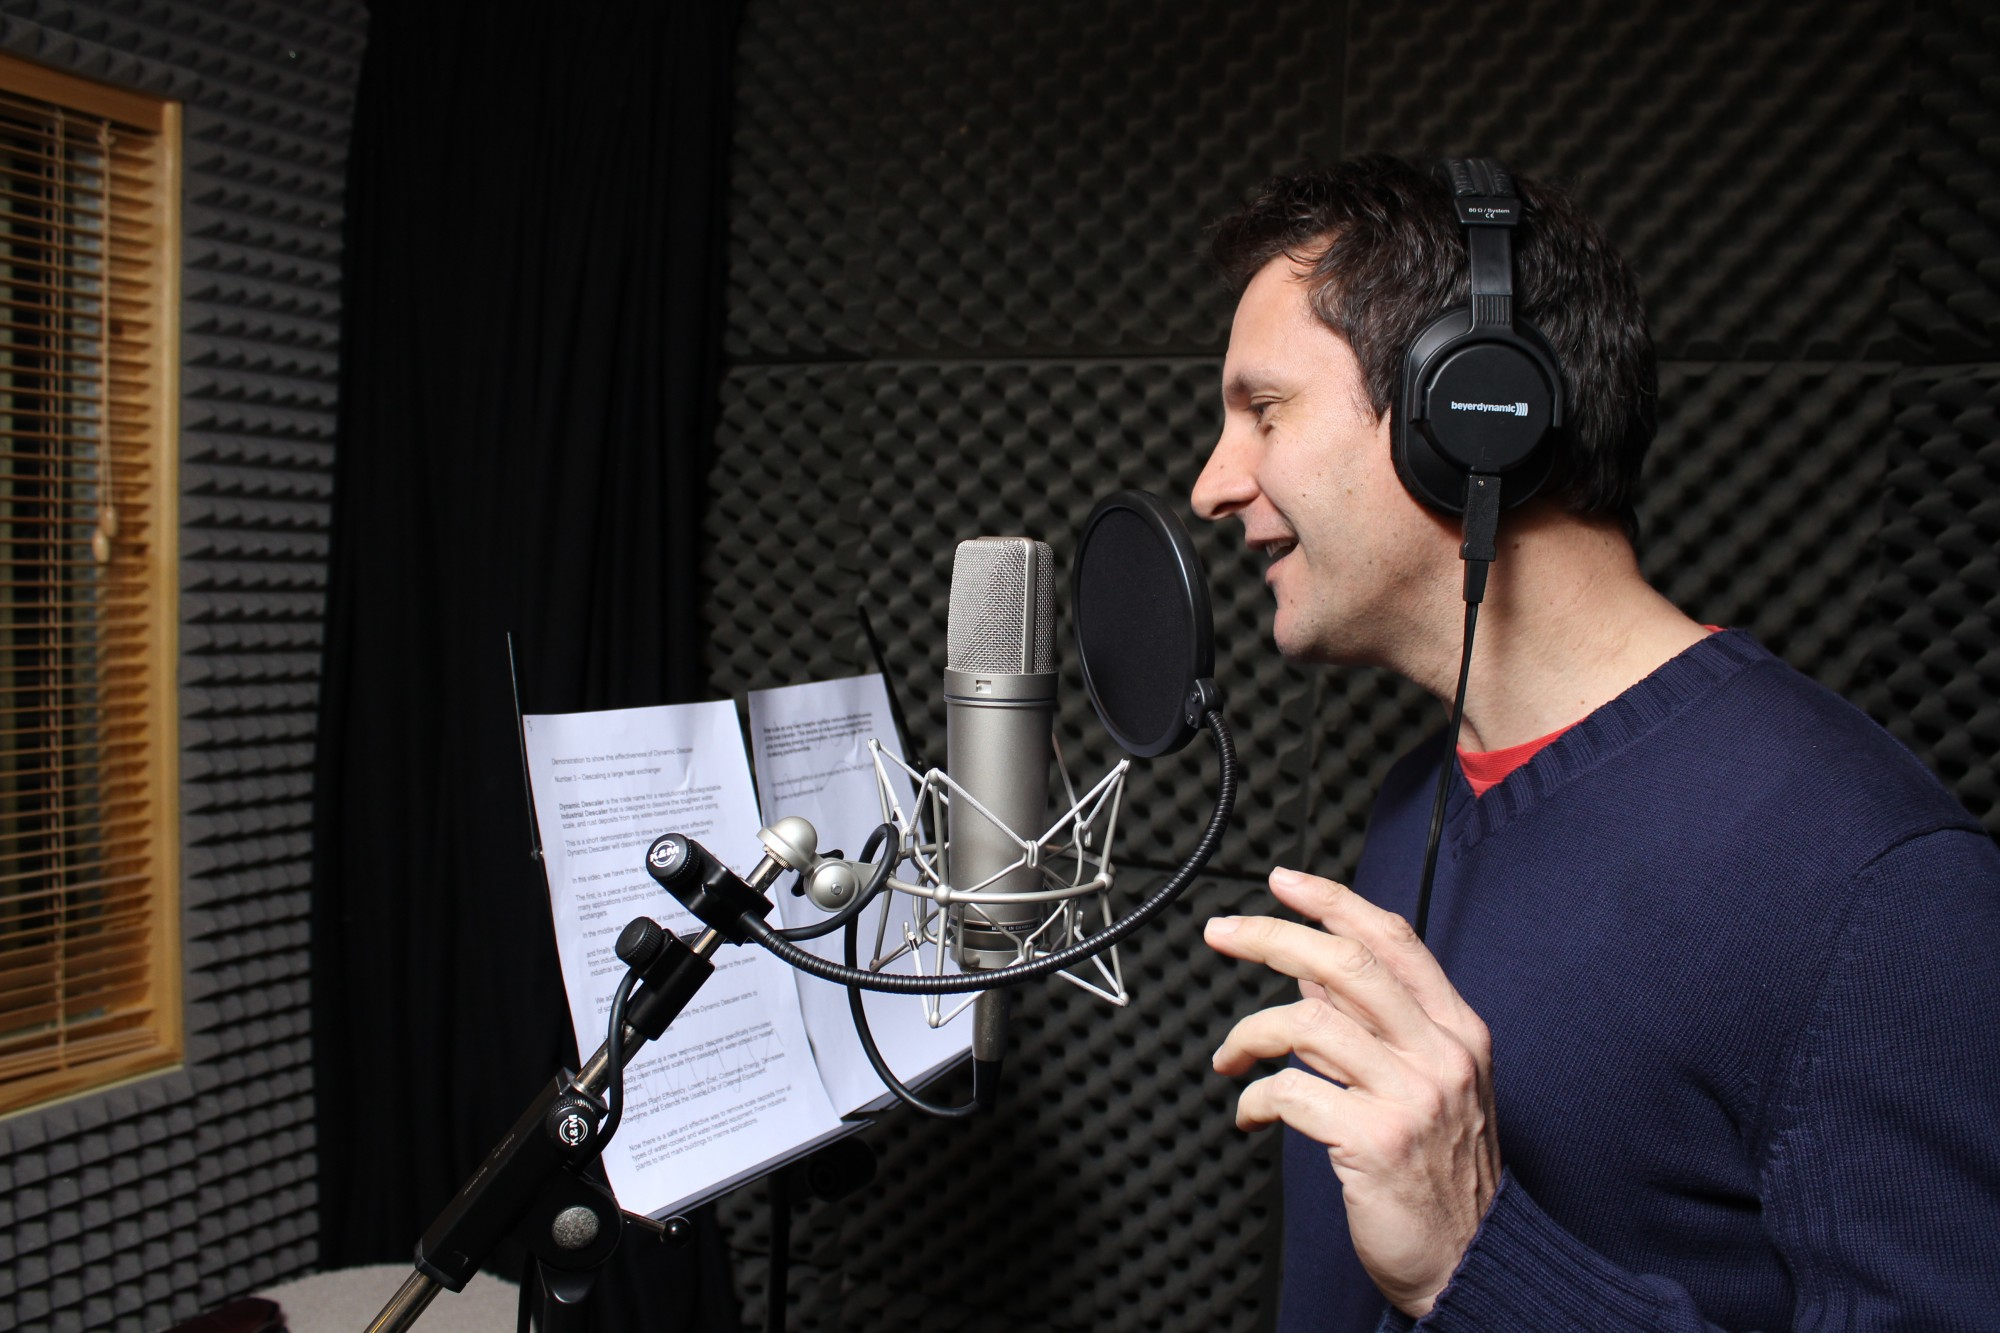 The former professional voiceover